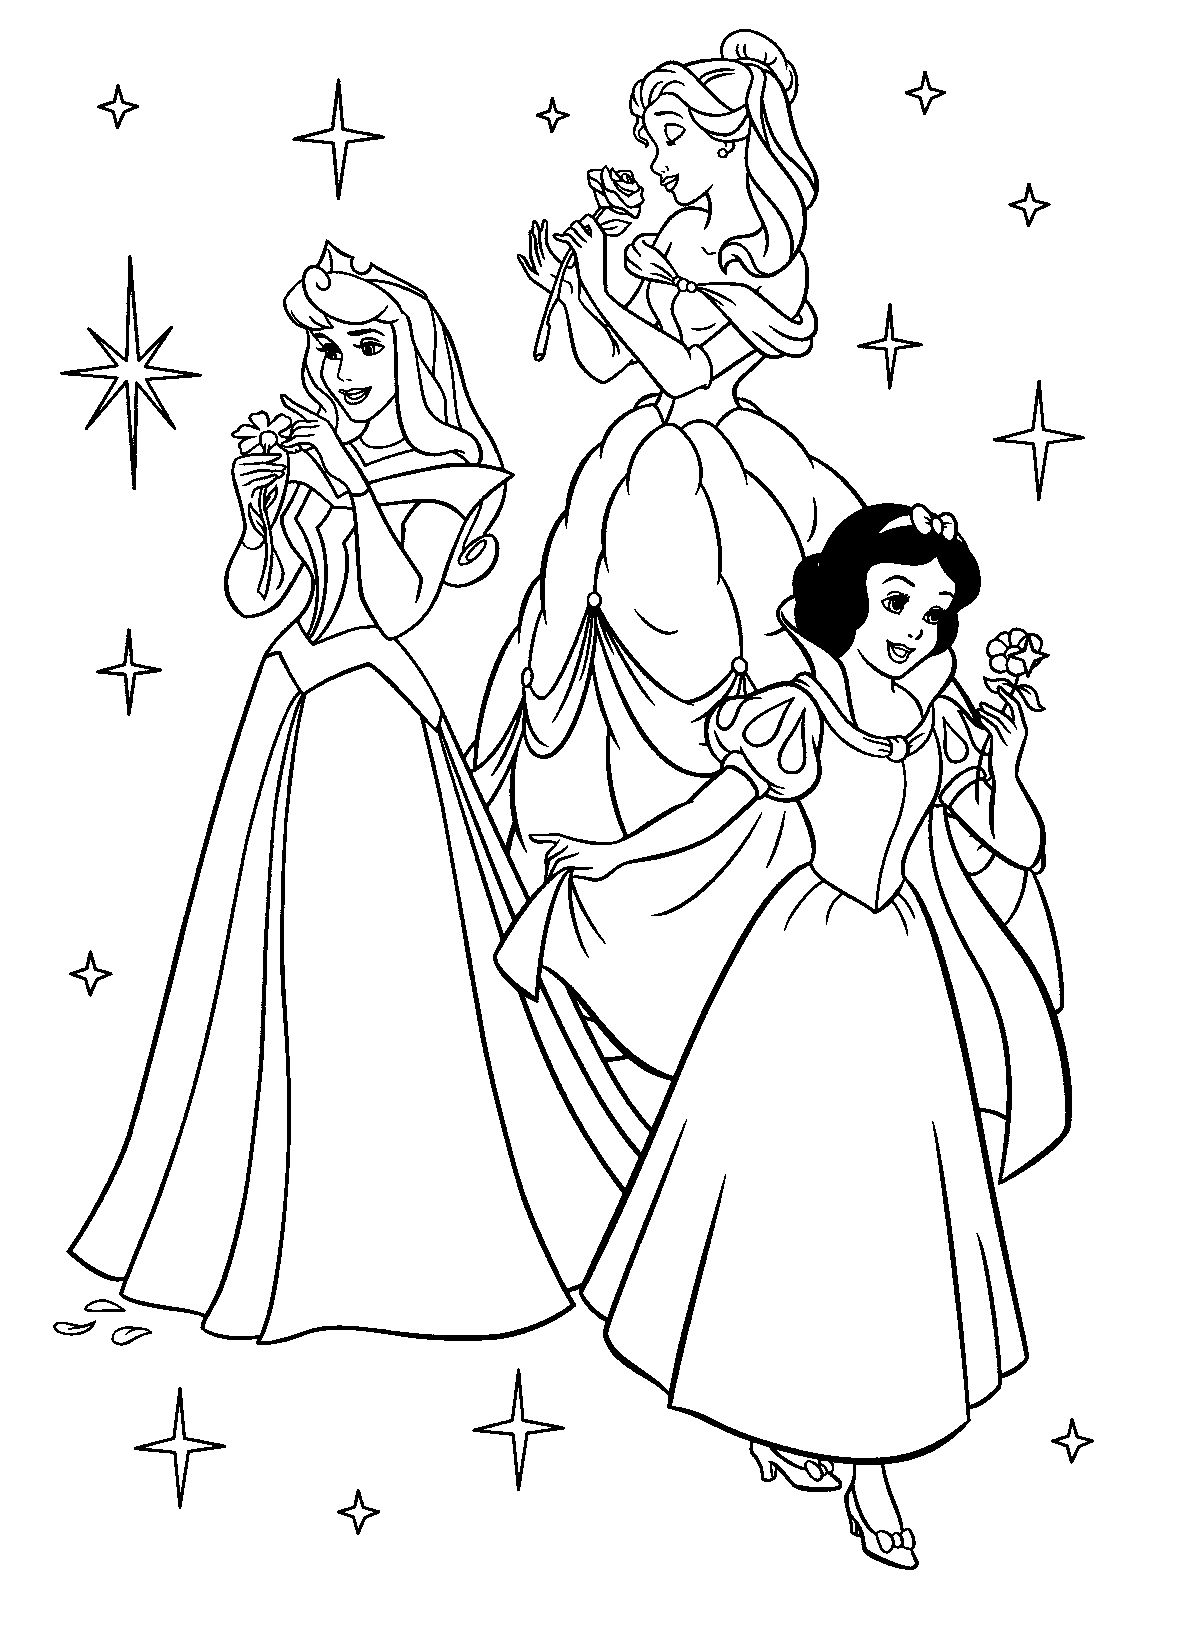 princess colouring pages print princess belle coloring pages to download and print for free pages princess print colouring